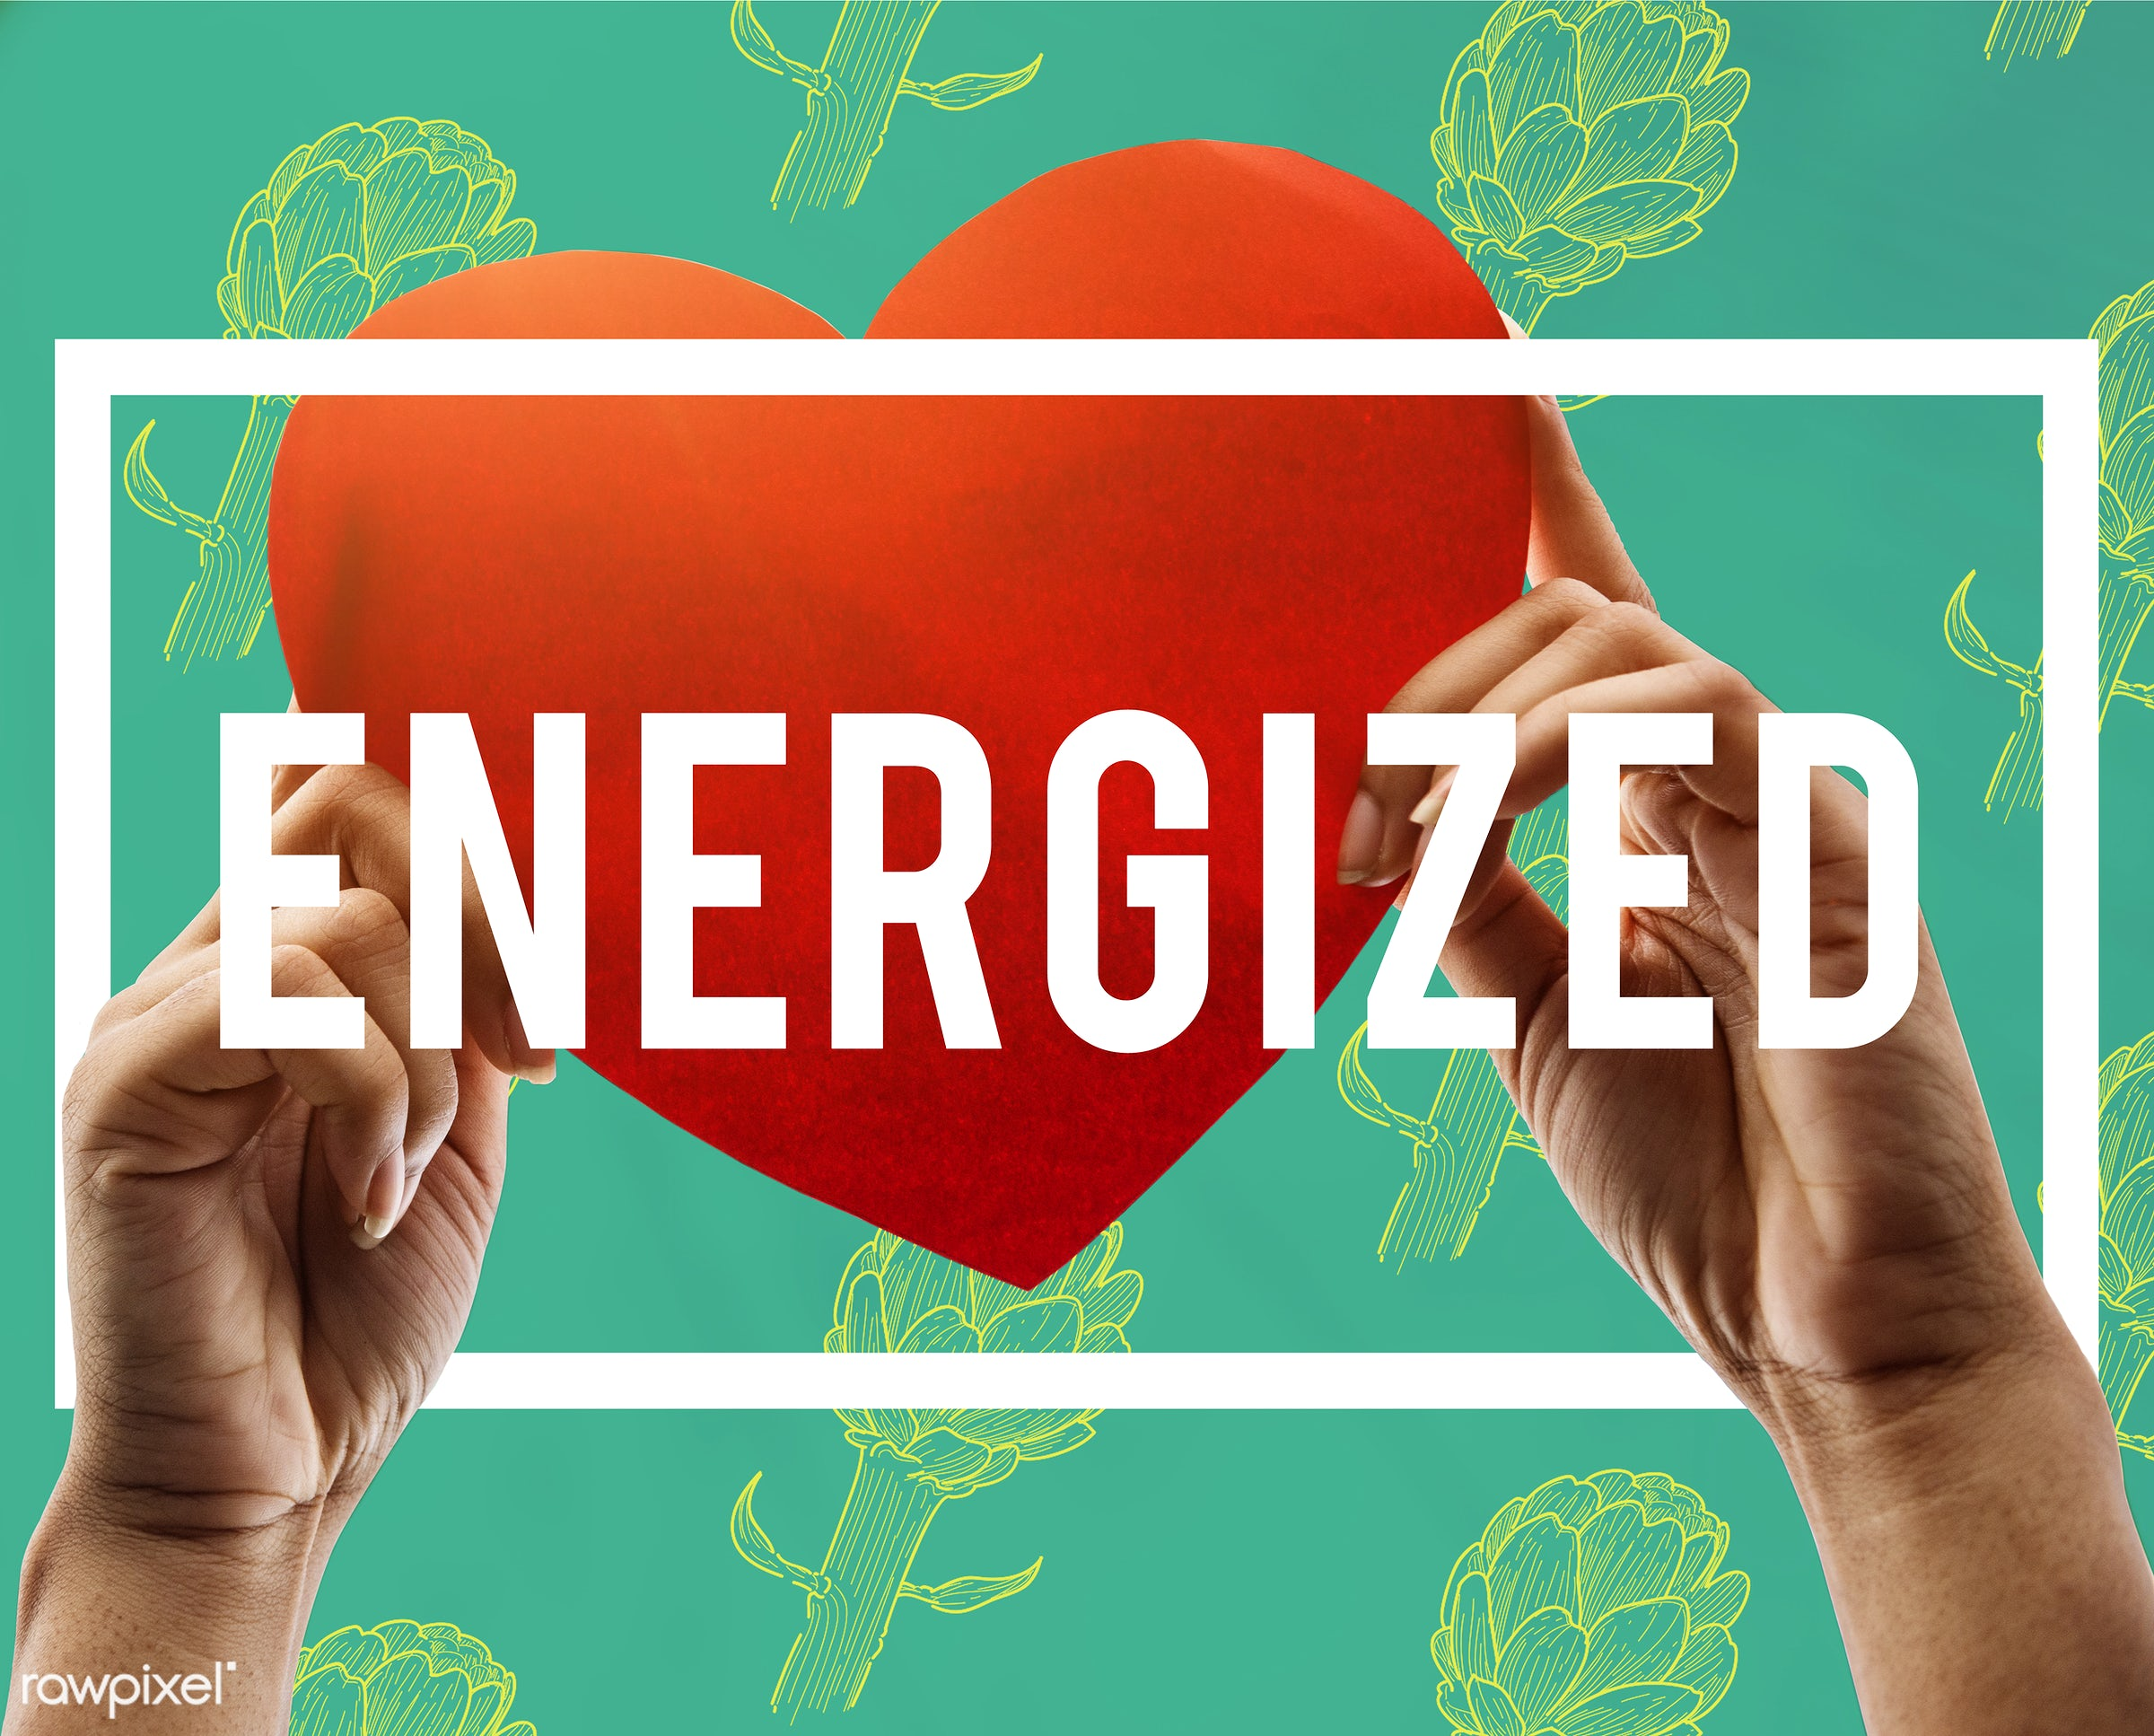 boost, carry, carrying, charged, couple, date, dating, drive, endurance, enduring, energized, energy, fresh, freshen, gave...